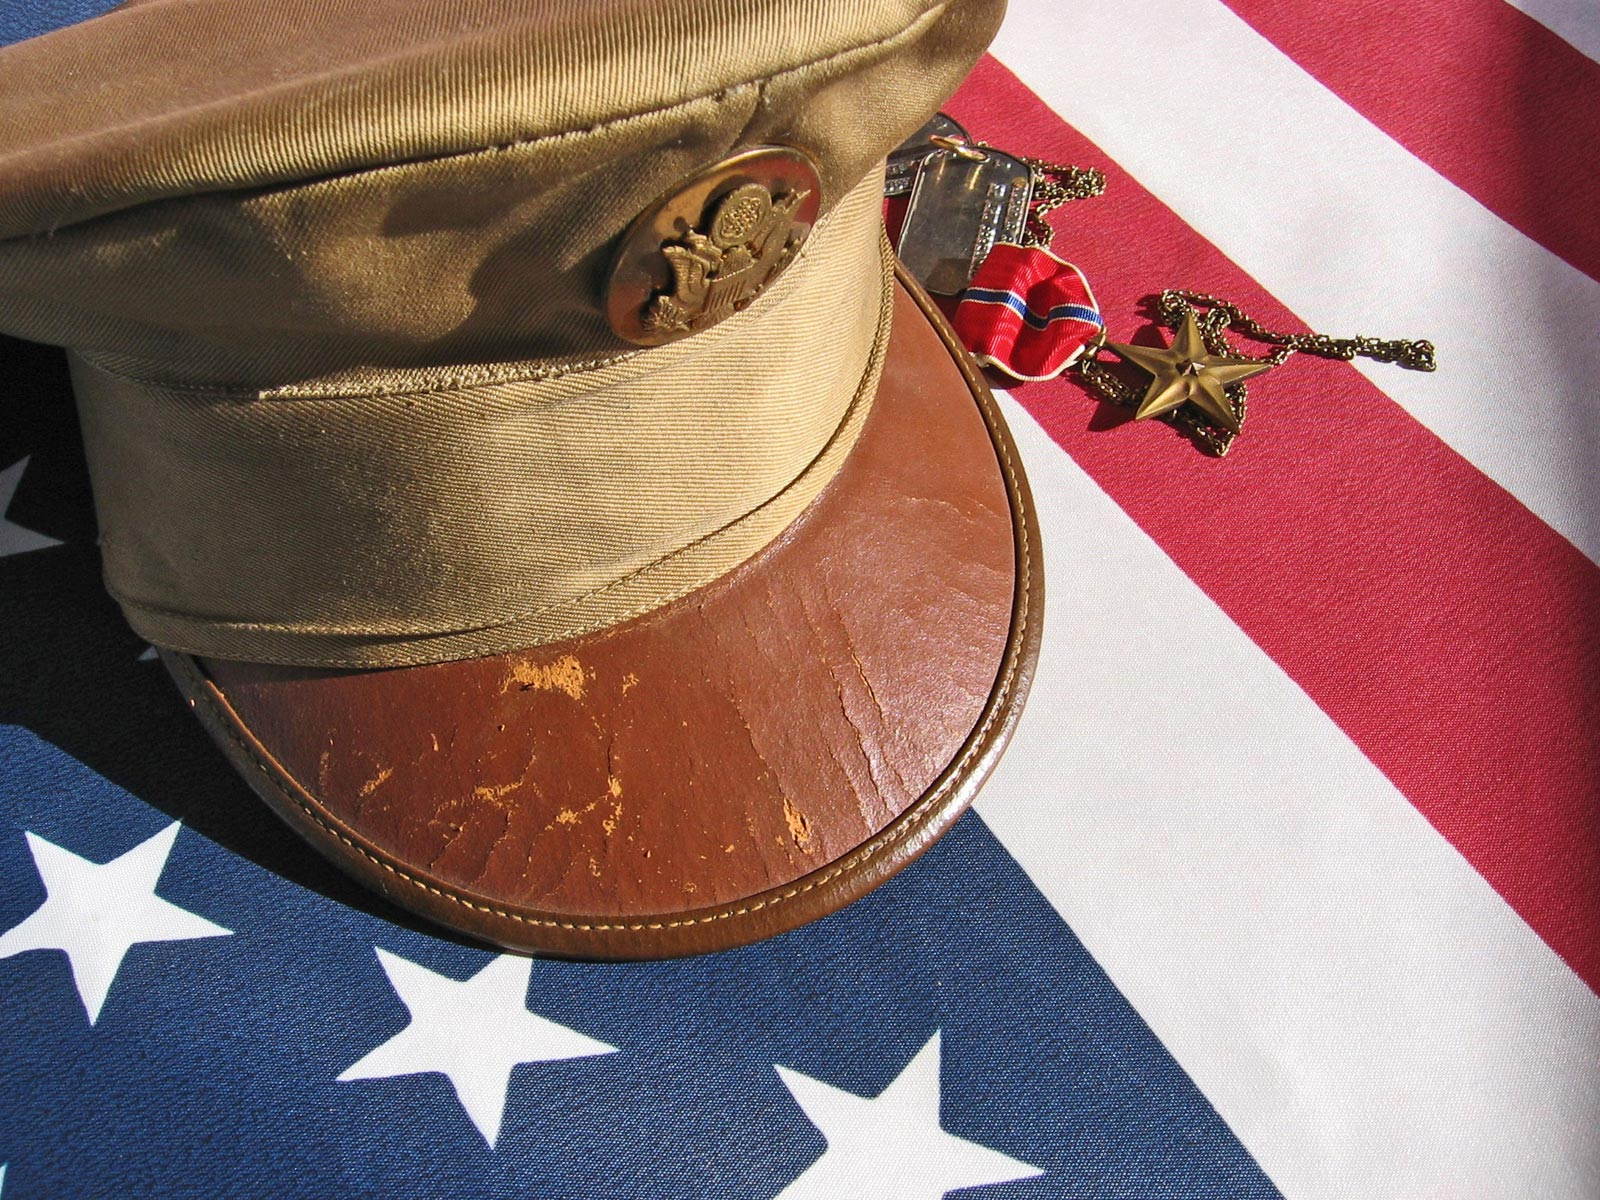 free memorial day powerpoint templates download | powerpoint tips, Presentation templates